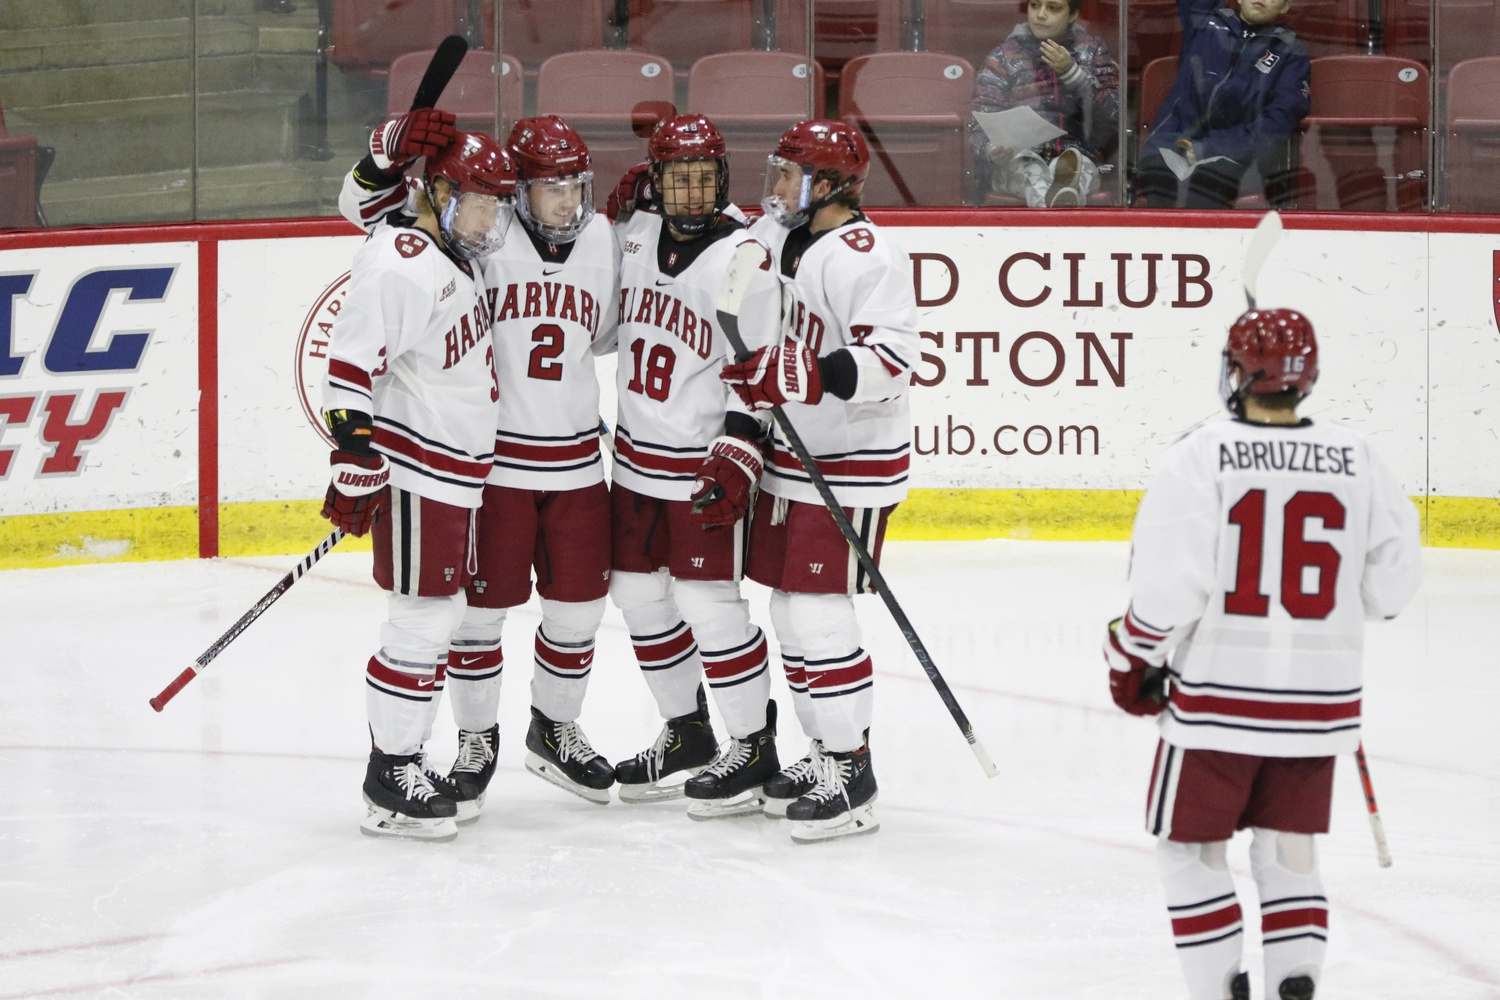 Dispatching St. Lawrence in two games gives the Crimson the chance to focus on its quarterfinal opponent.